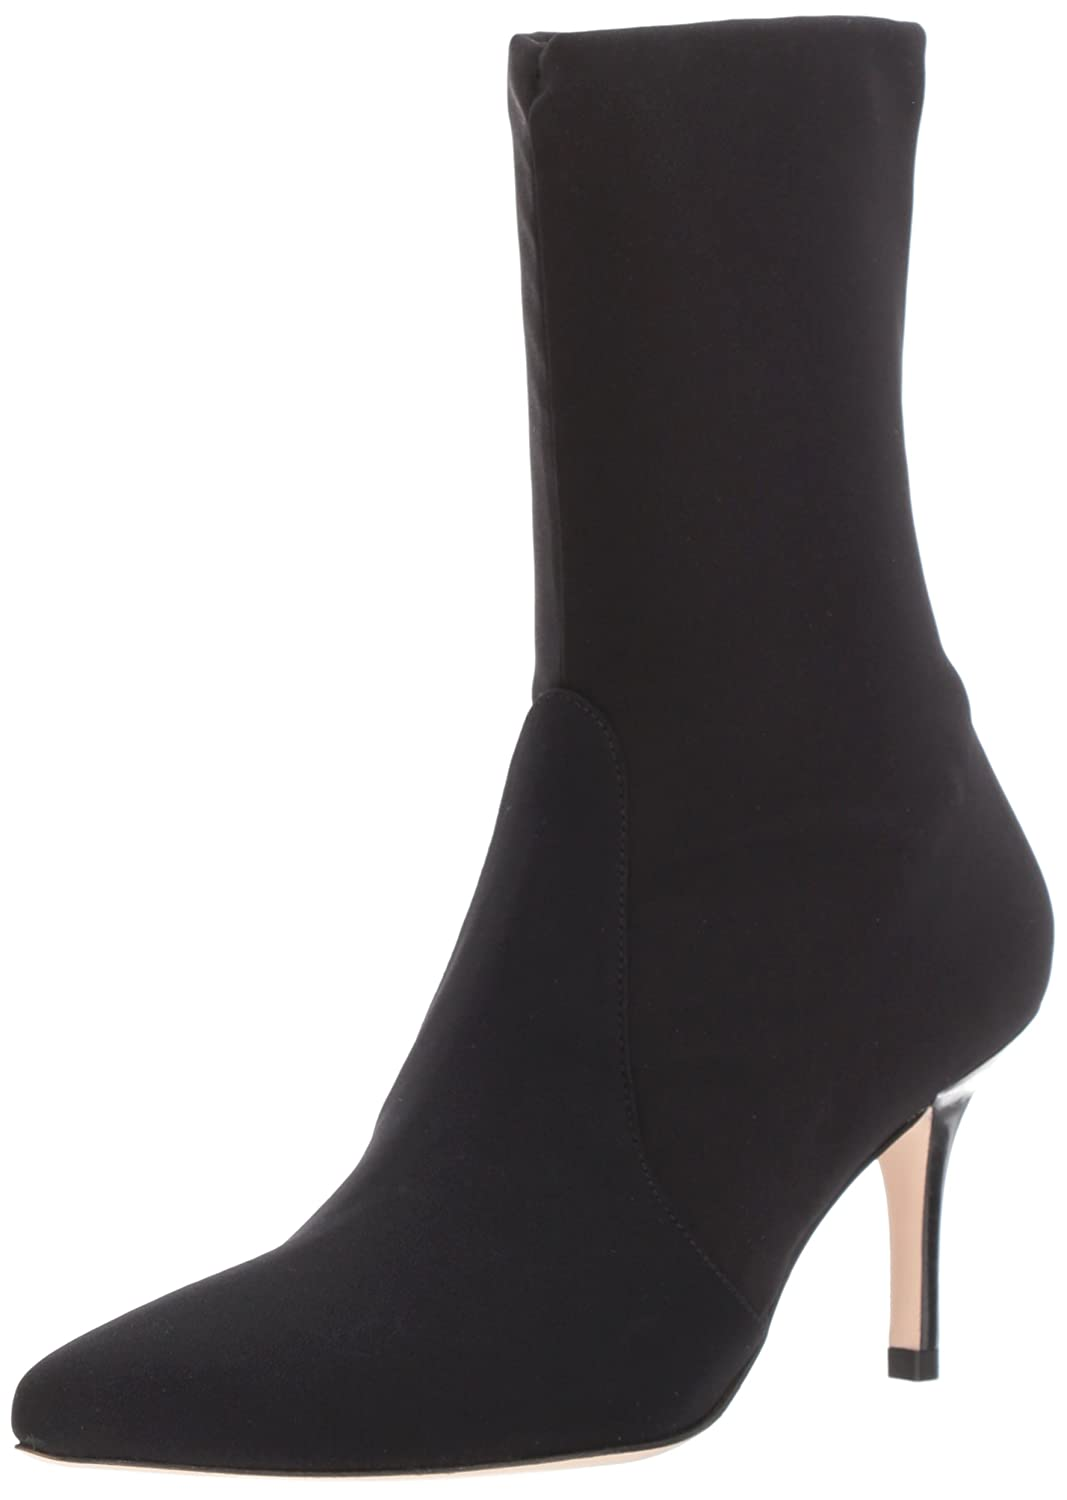 Stuart Weitzman Women's Axiom Ankle Boot B073C5ZTKR 8.5 B(M) US|Black Micro